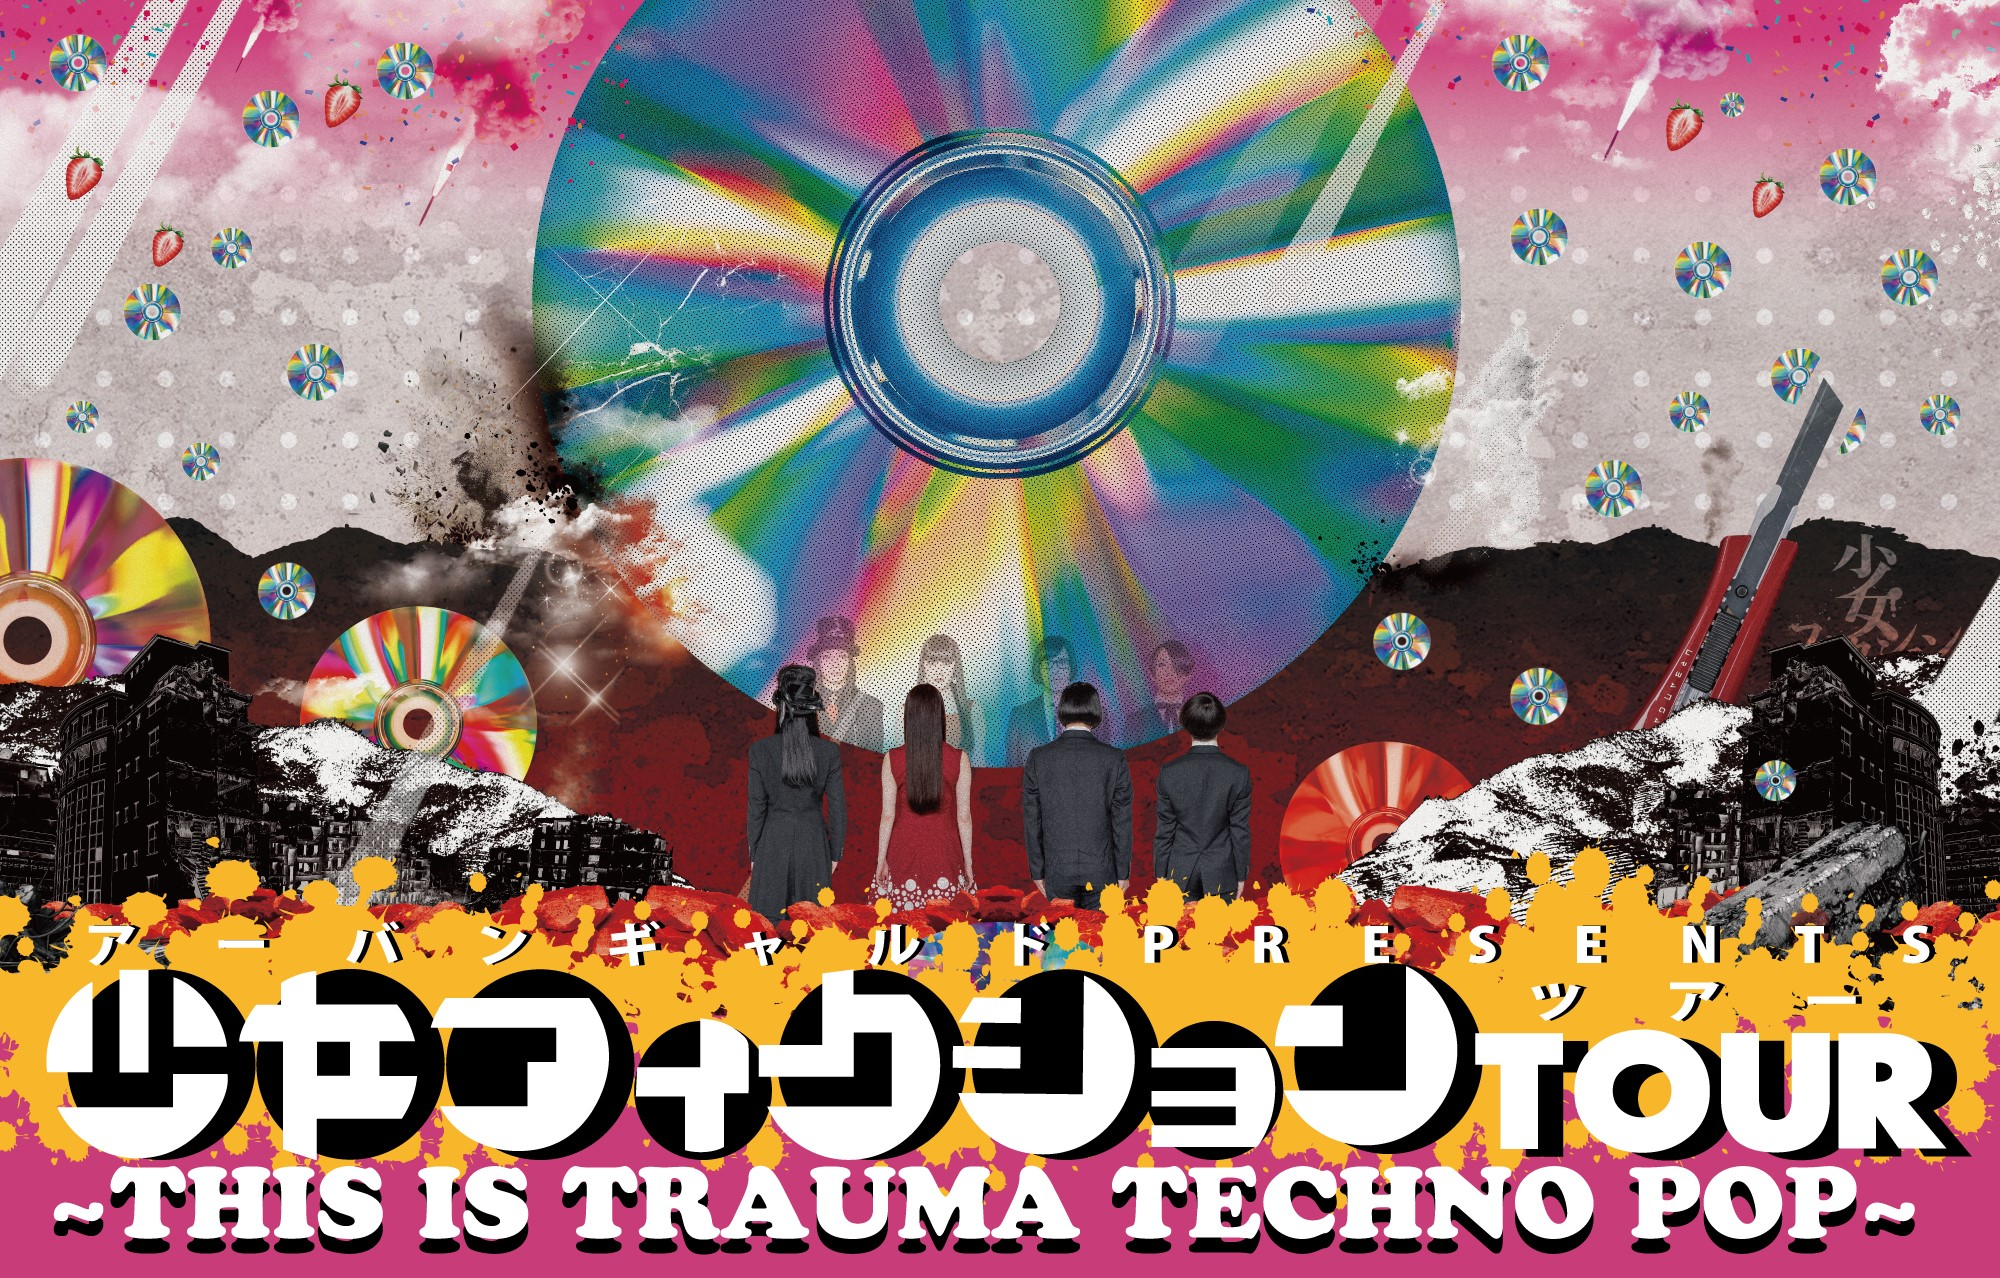 RMMS-URBANGARDE-Shoujo-Fiction-Trauma-Techno-Tour-1